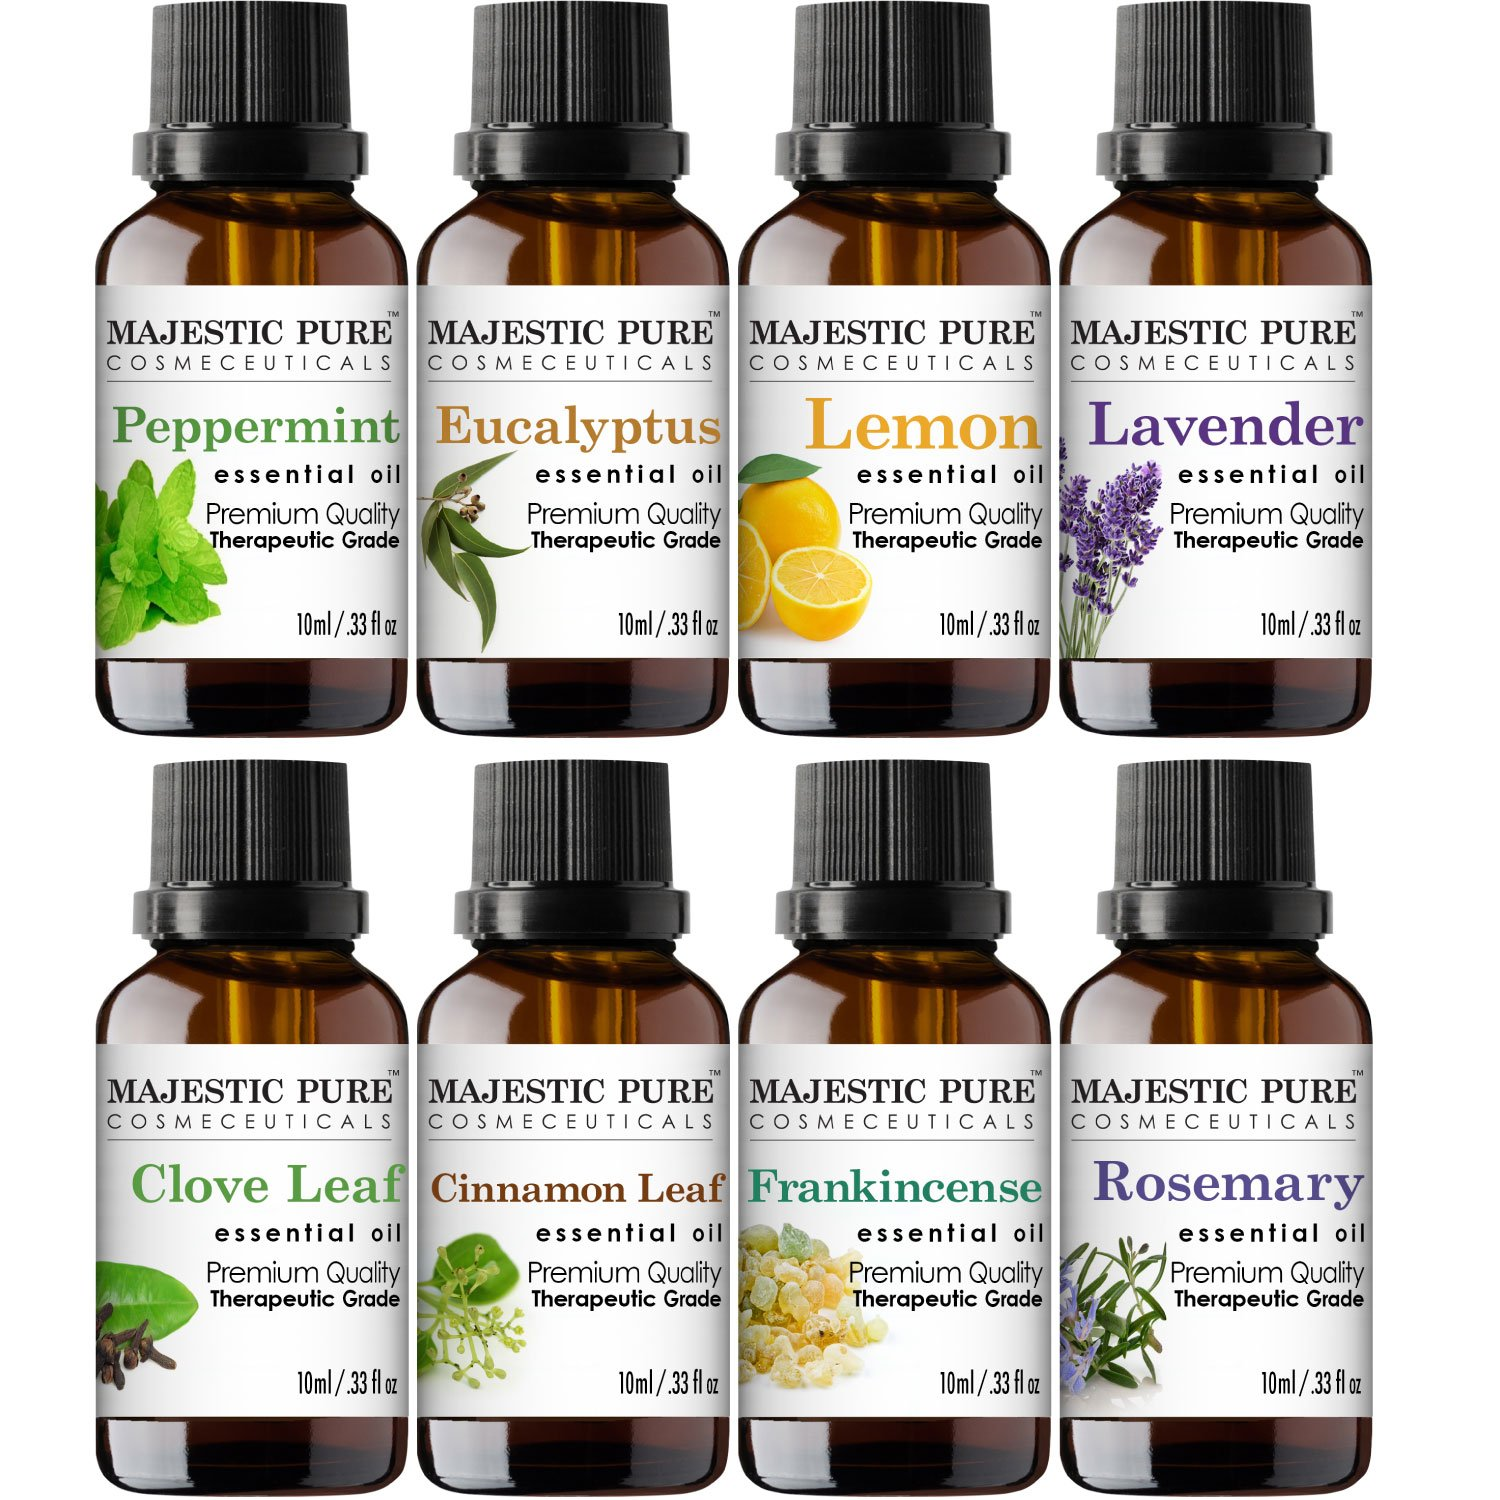 MajesticPure Aromatherapy Essential Oils Set, Includes Lavender, Frankincense, Peppermint, Eucalyptus, Lemon, Clove Leaf, Cinnamon Leaf & Rosemary Oils- Pack of 8-10 ml each by Majestic Pure (Image #4)